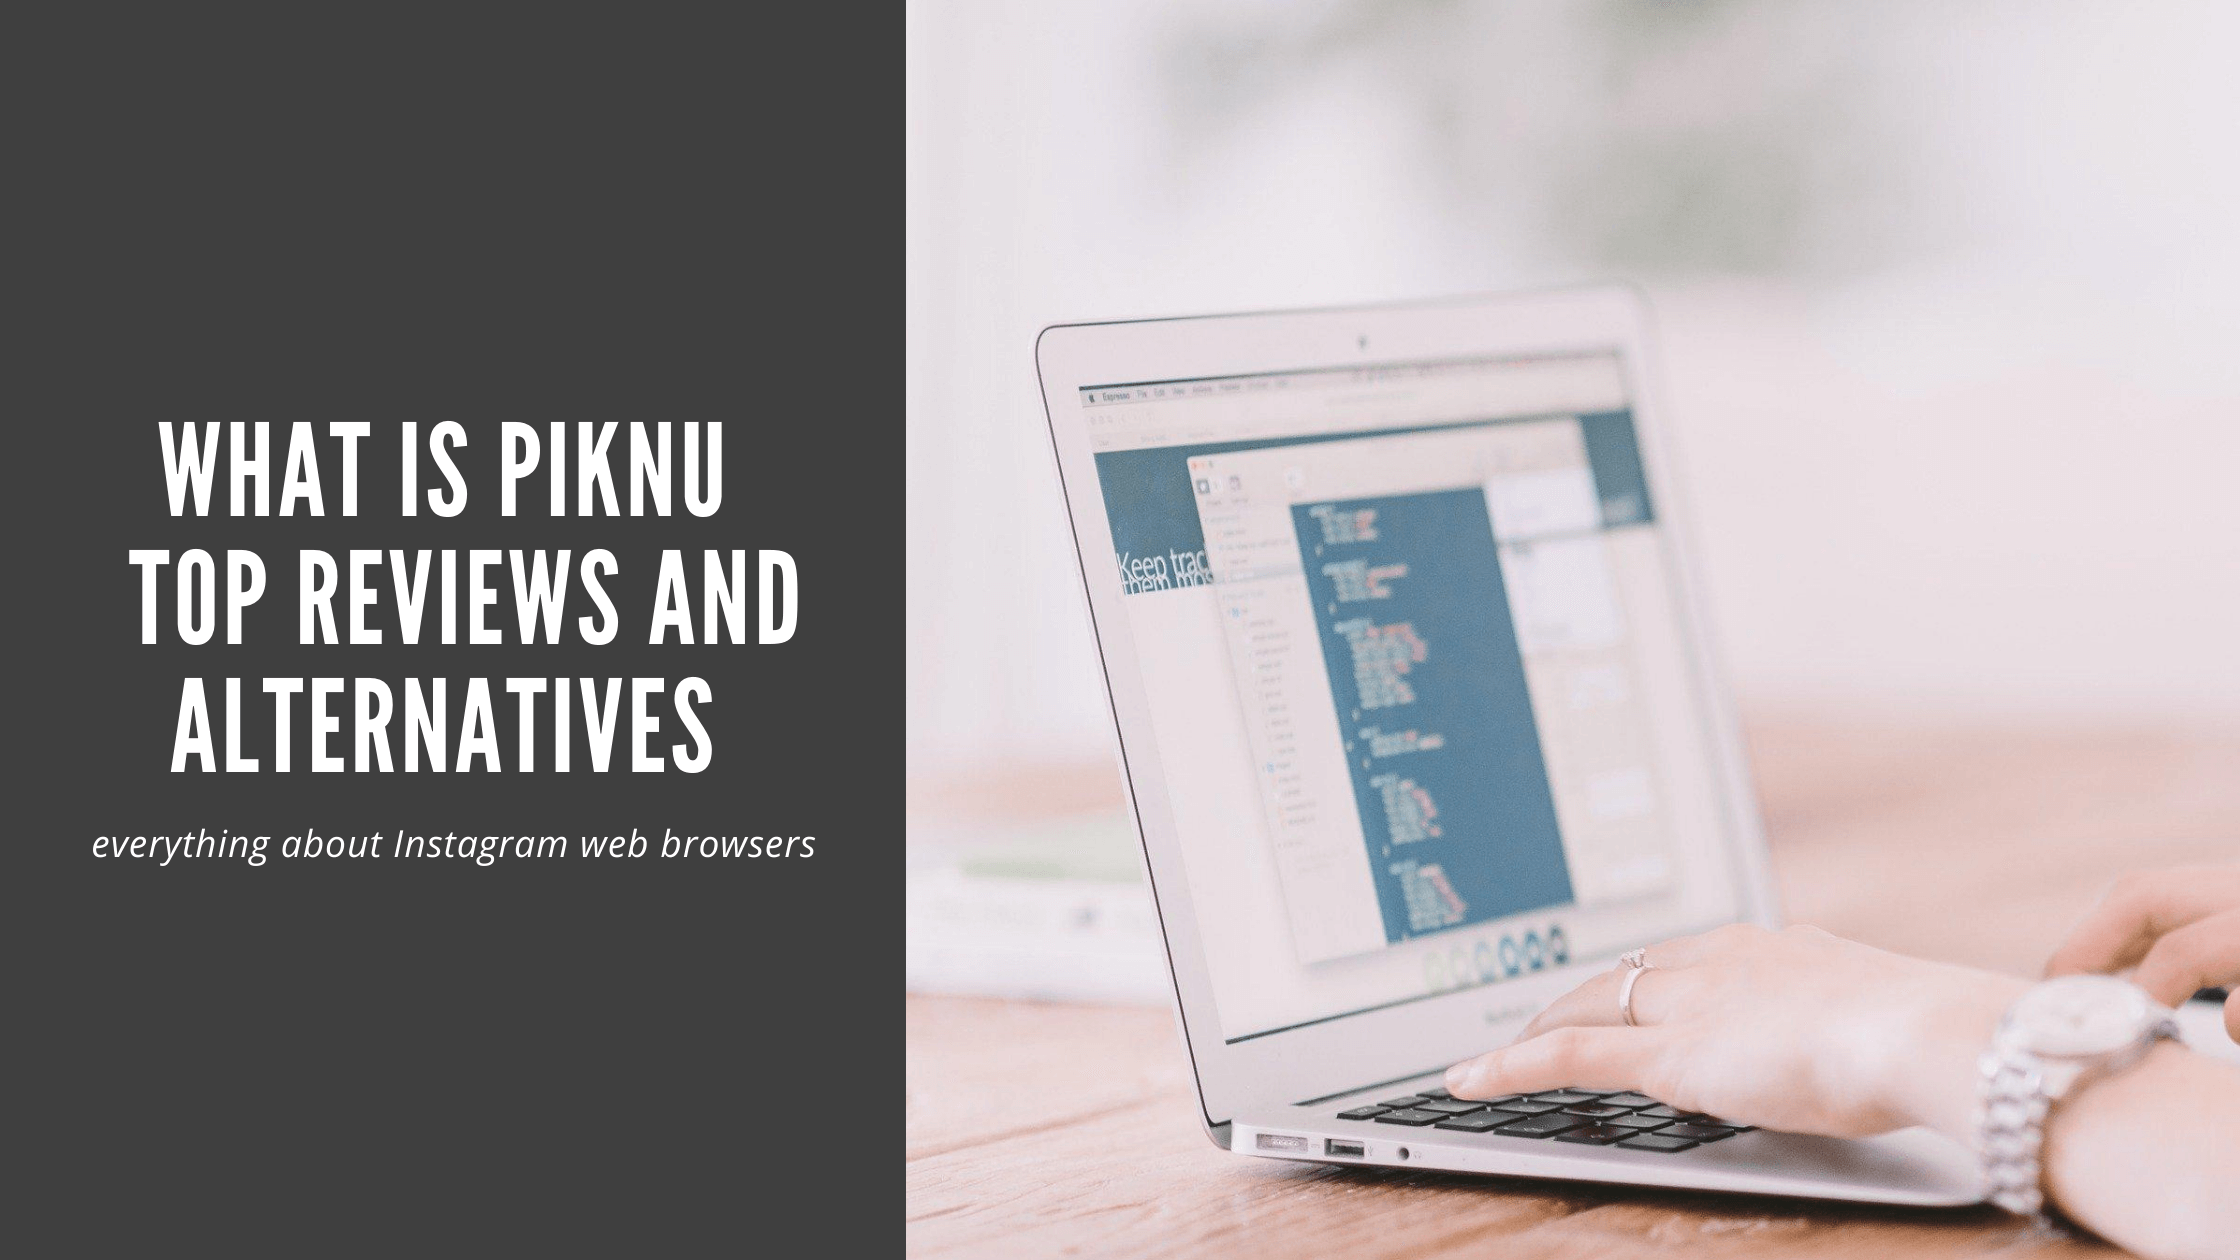 What is Piknu – Top reviews and alternatives